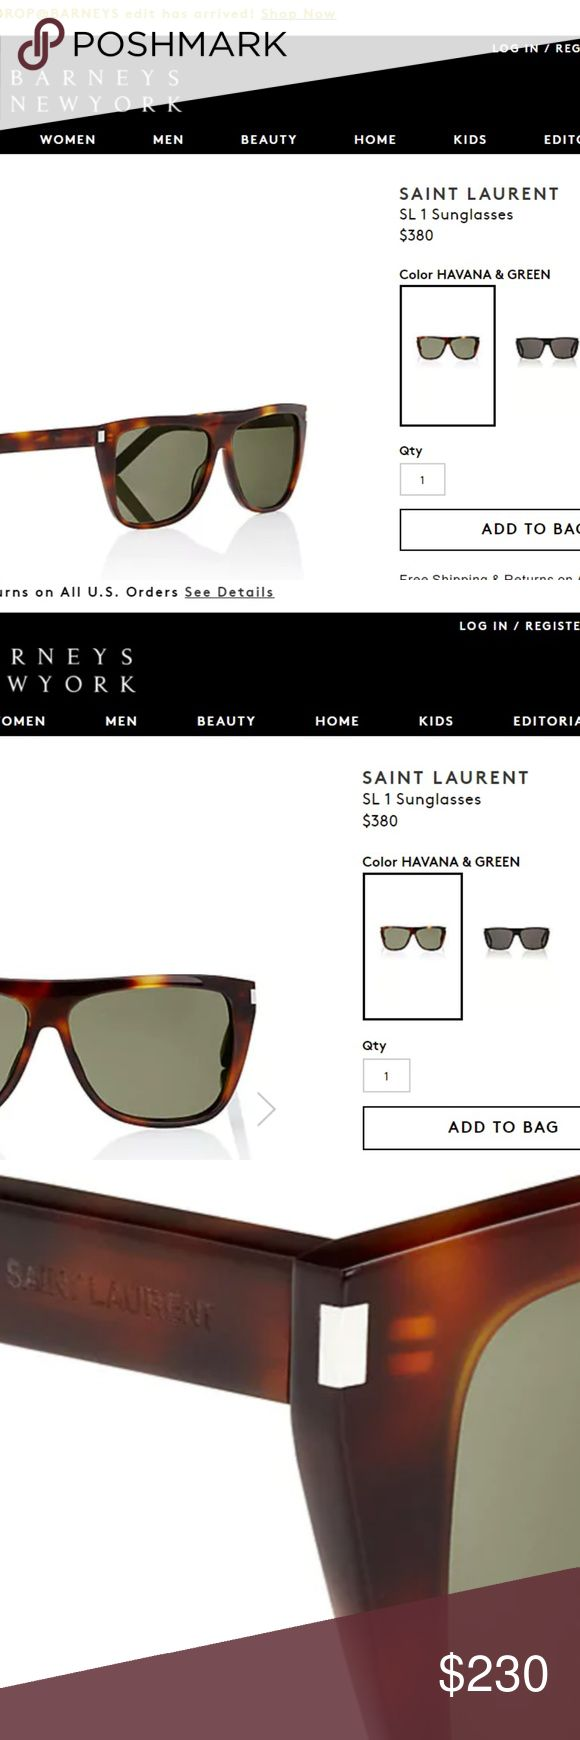 SAINT LAURENT SUNGLASSES 100% AUTHENTIC-BRAND NEW Currently listed on Barney's site for $380. These are brand new 100% authentic in packaging, never worn or taken out of packaging ever, which is why I have my pictures directly from Barney's site. Tons of celebrities wear these exact shades...Kim Kardashian, Miranda Kerr, Angelina Jolie, etc.  These are the Havana & Green color, Kim K is wearing the black version Saint Laurent Accessories Sunglasses